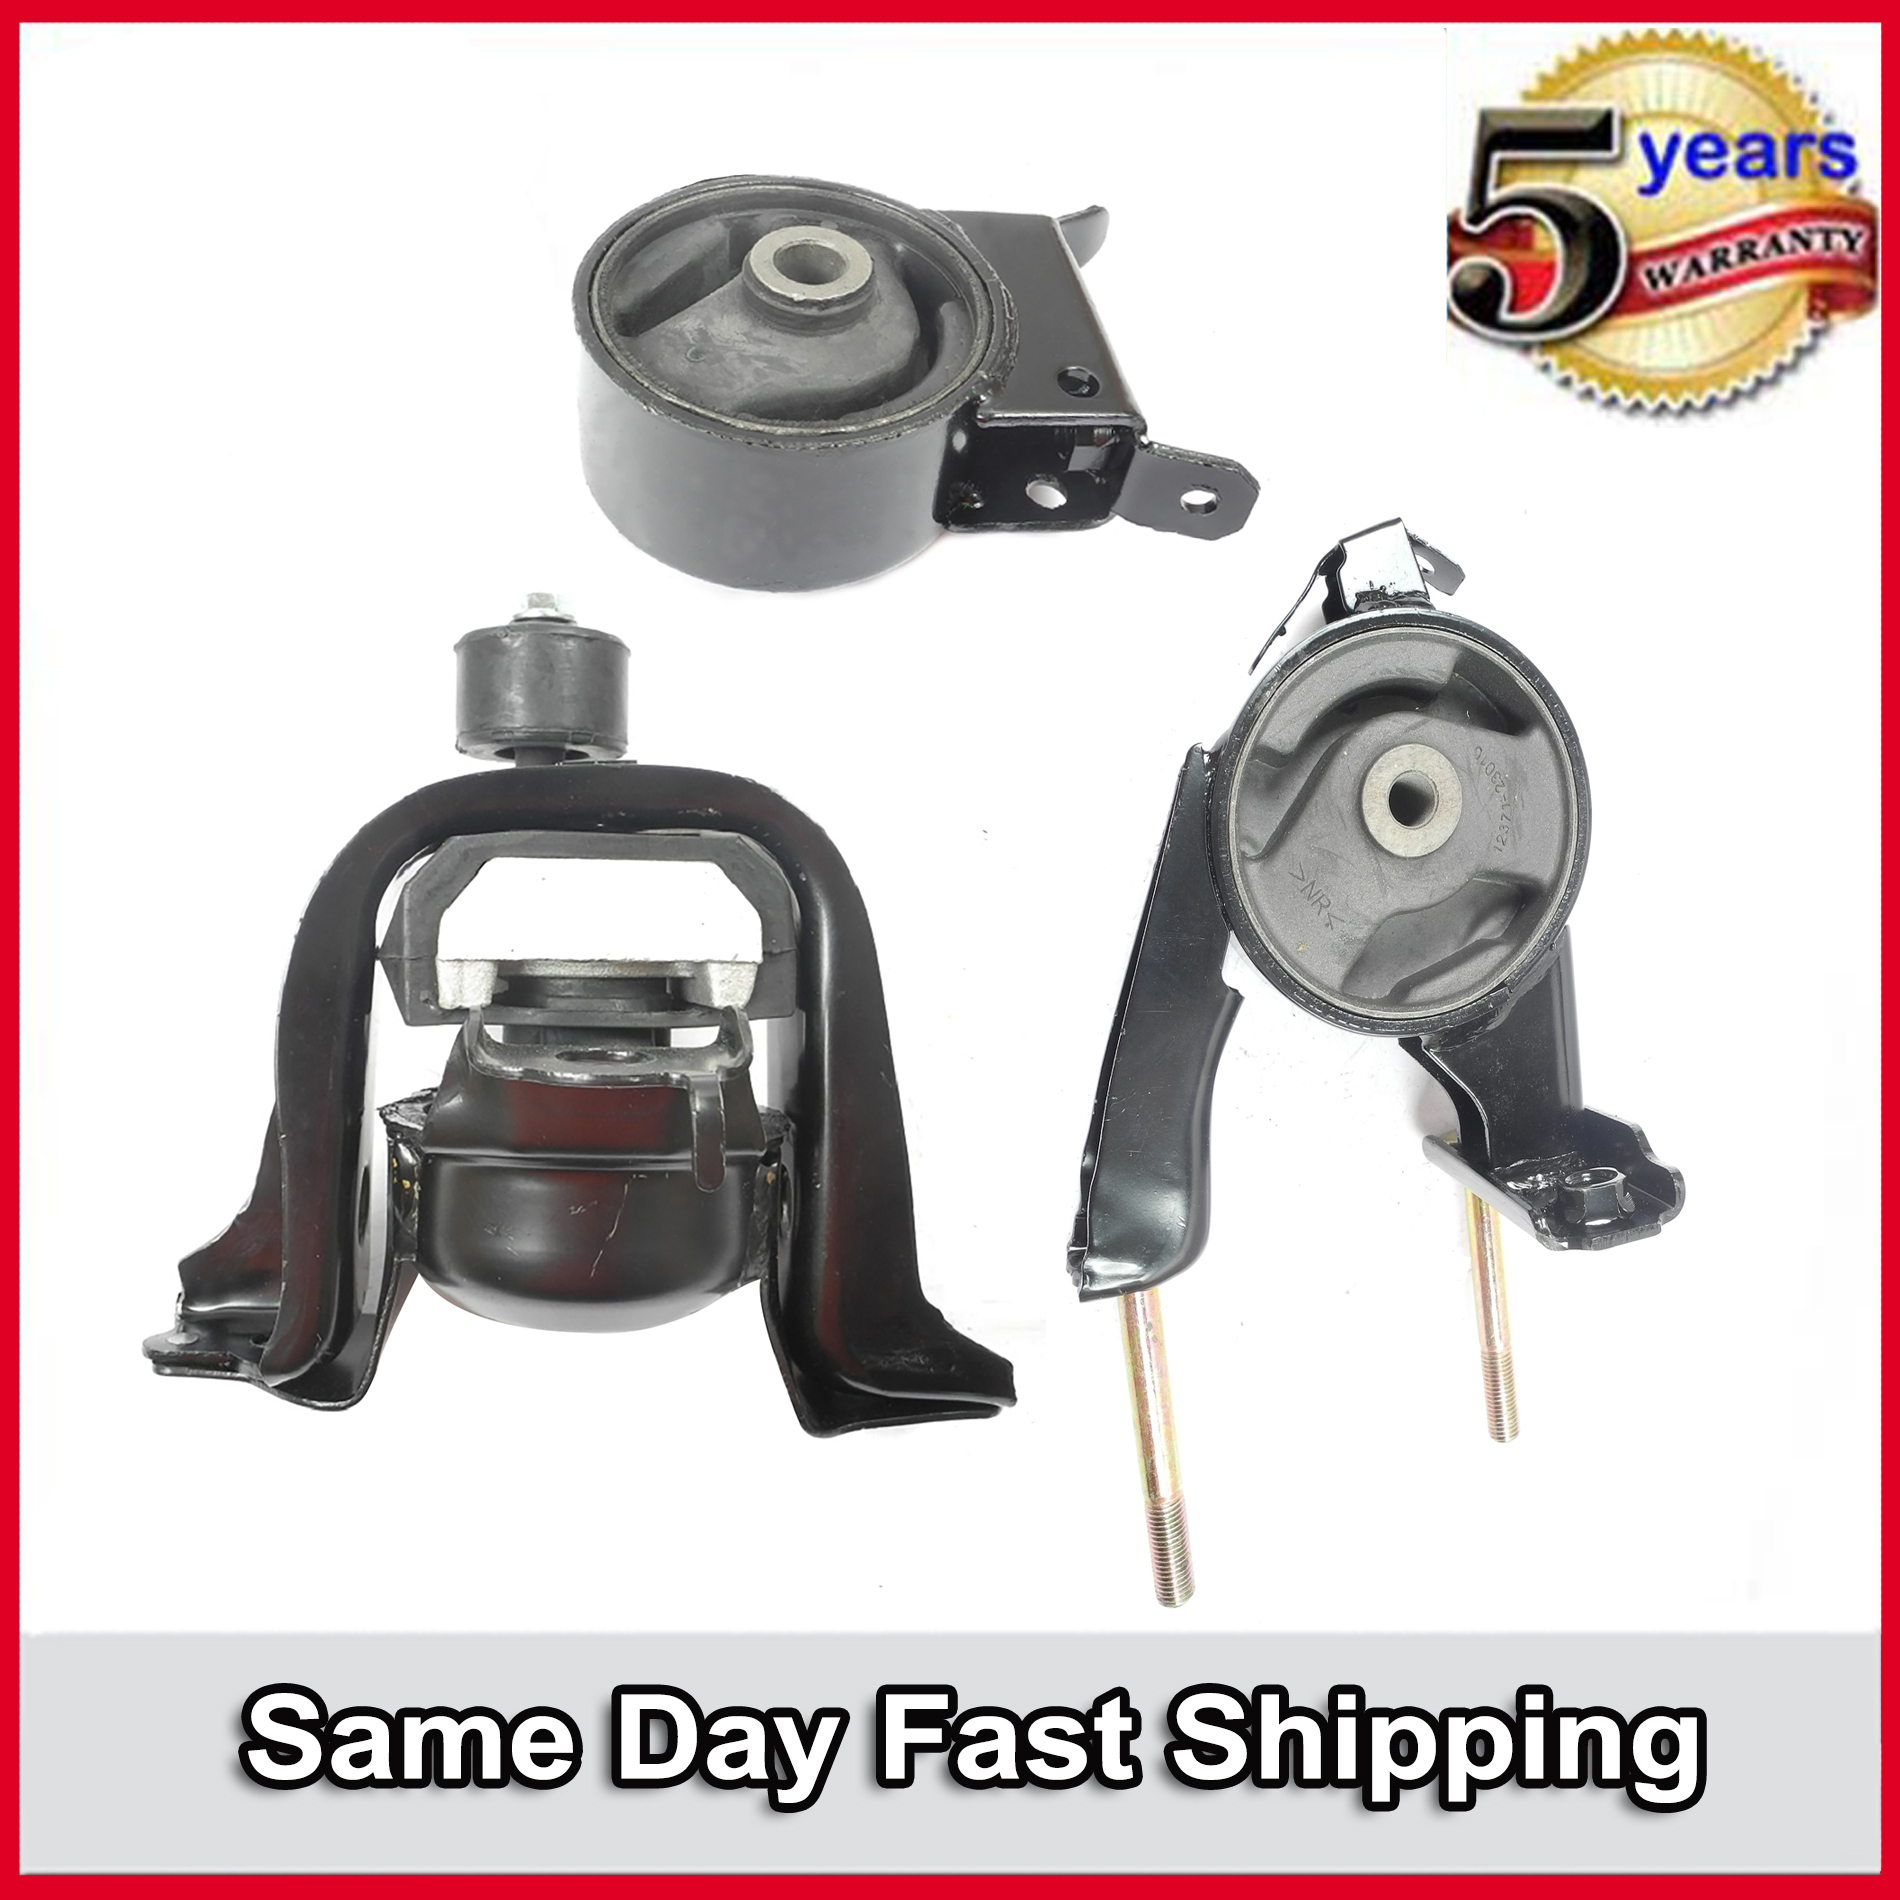 M348 7260 7228 7288 Trans Engine Motor Mount For 00-05 Toyota Echo MT Mounts